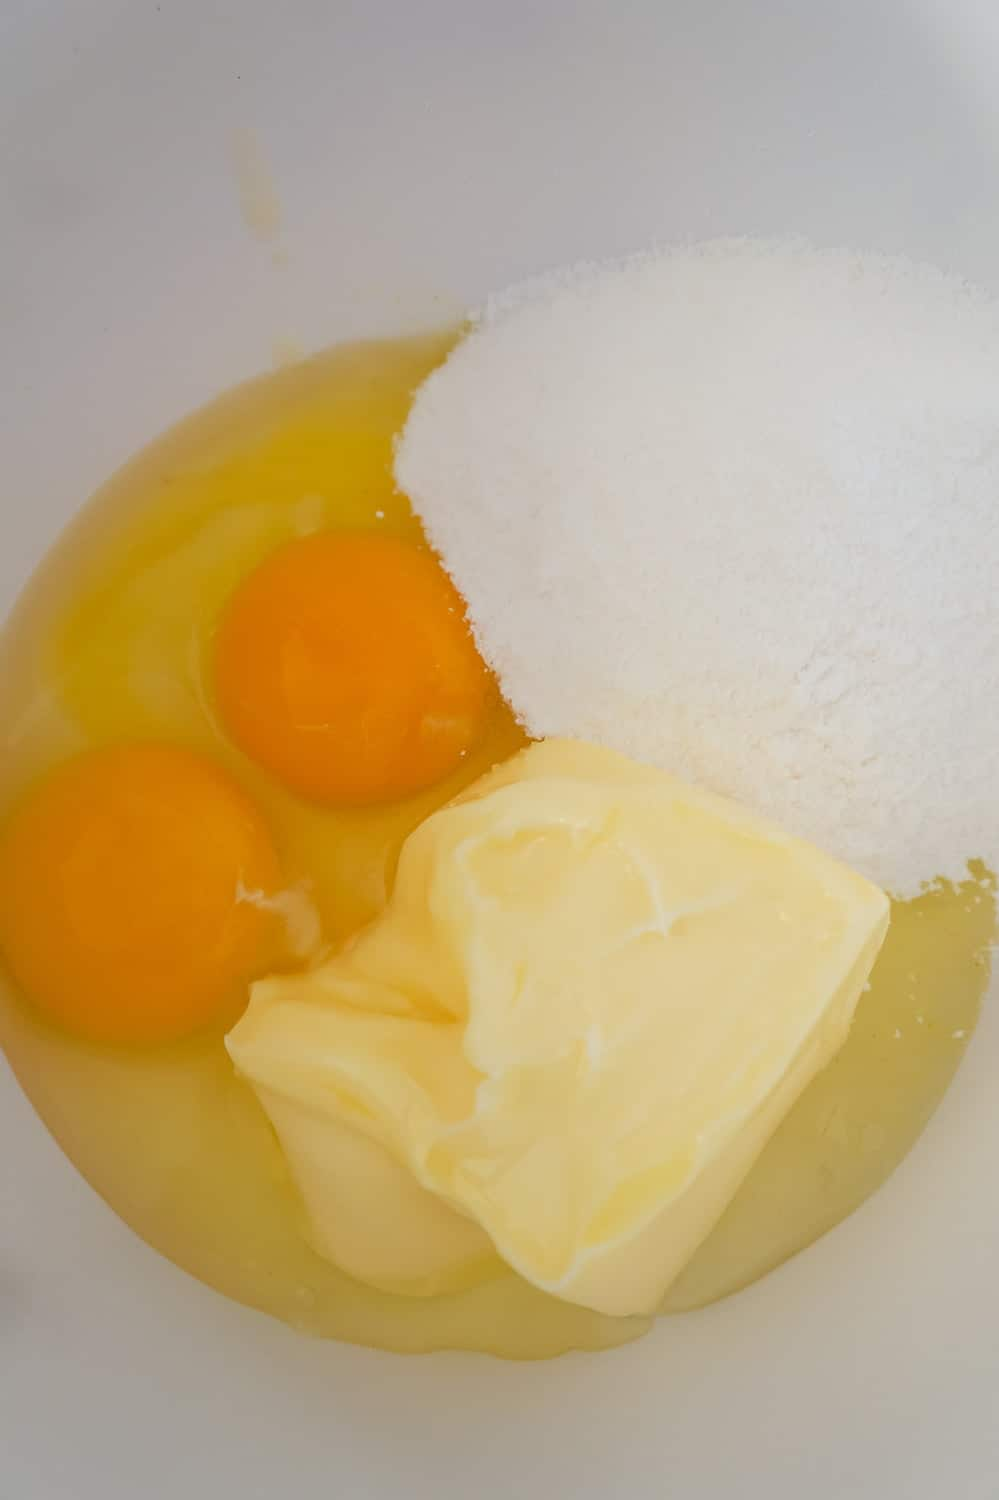 eggs, softened butter and lemon pudding mix in a mixing bowl